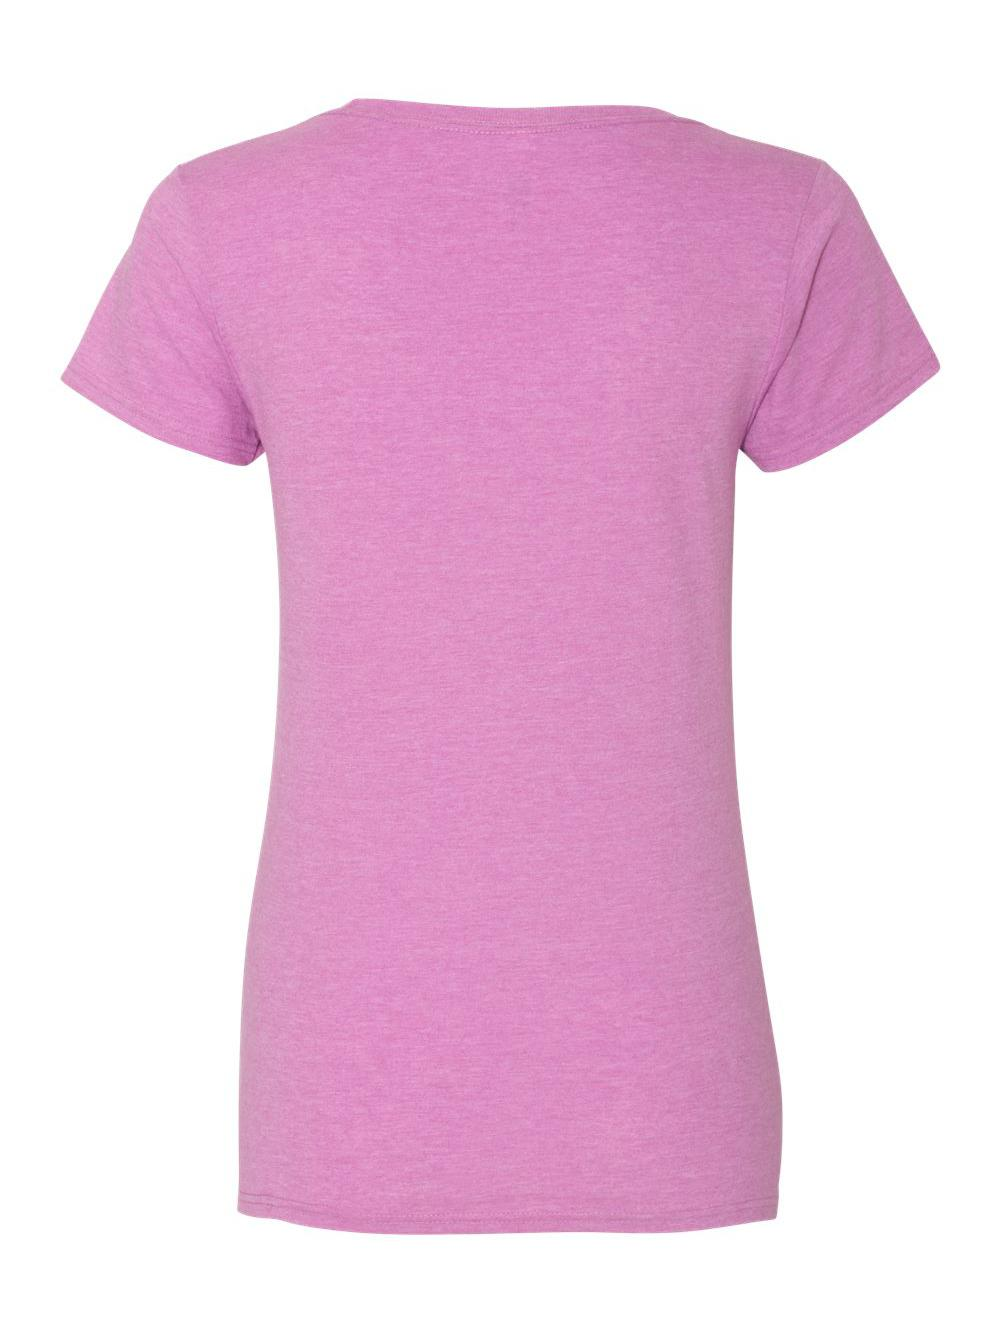 Gildan-Softstyle-Women-039-s-Deep-Scoopneck-T-Shirt-64550L thumbnail 28